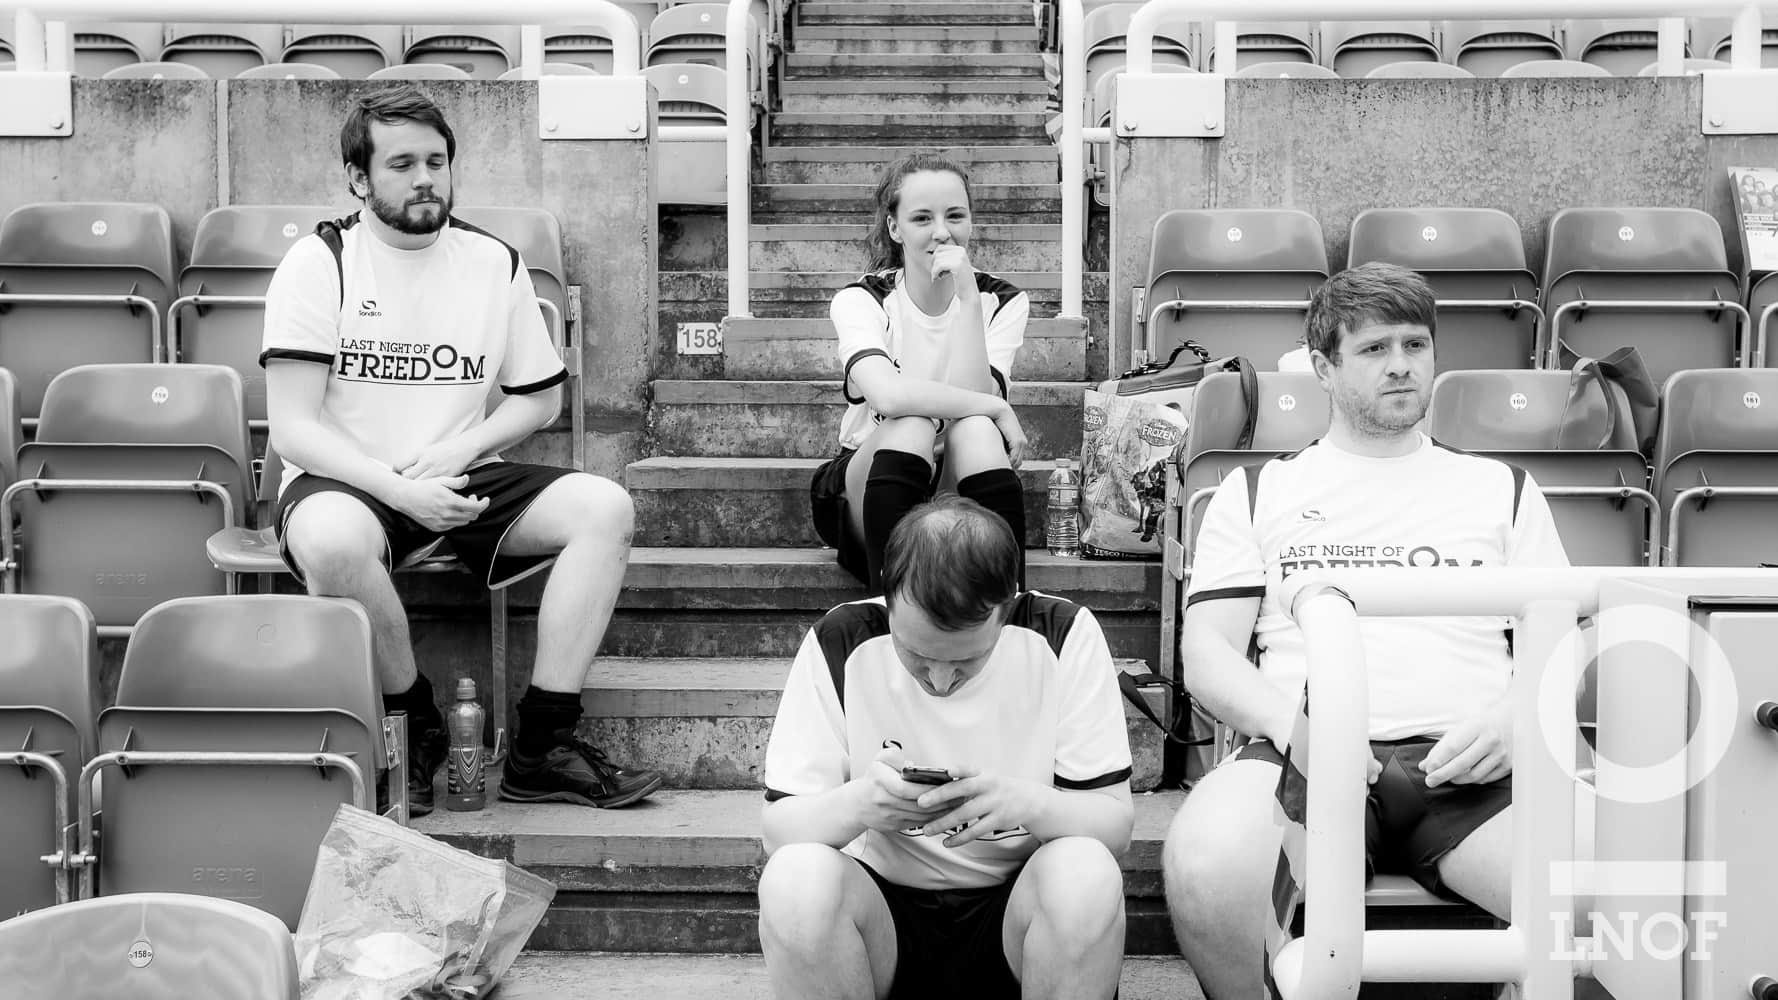 LNOF staff sat down and waiting to play rugby